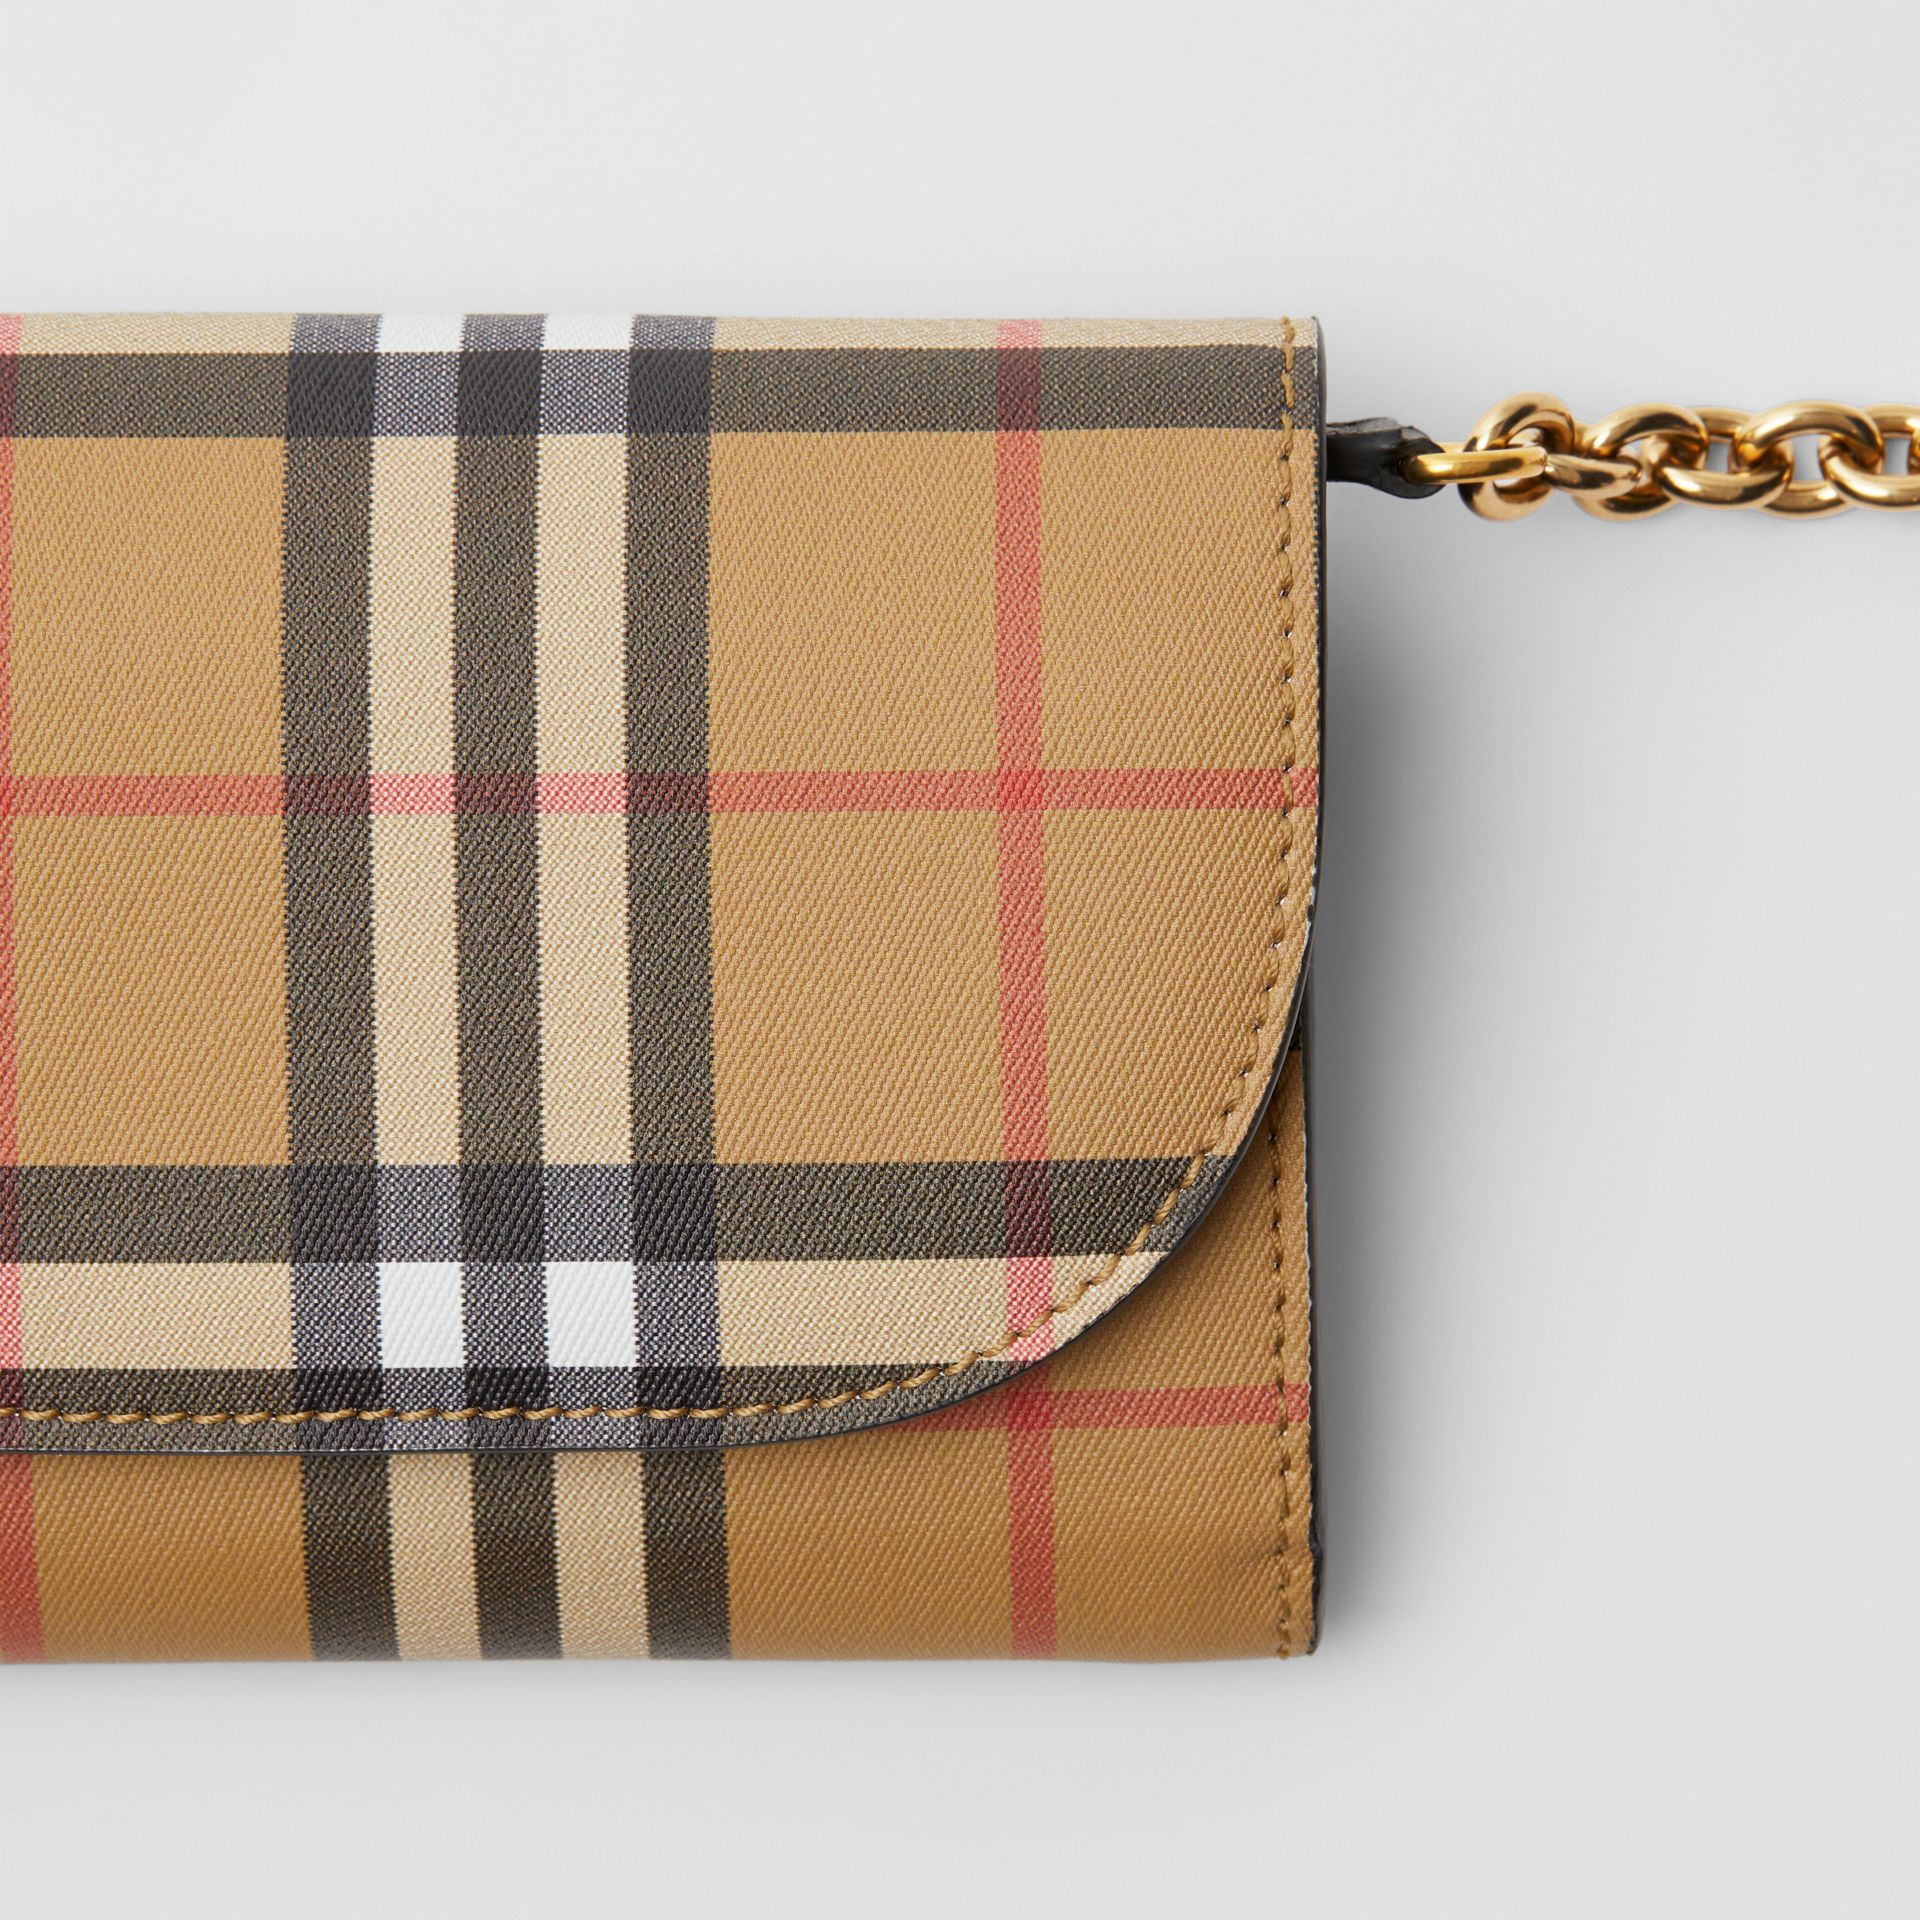 Vintage Check and Leather Wallet with Chain in Black - Women | Burberry Hong Kong - gallery image 1